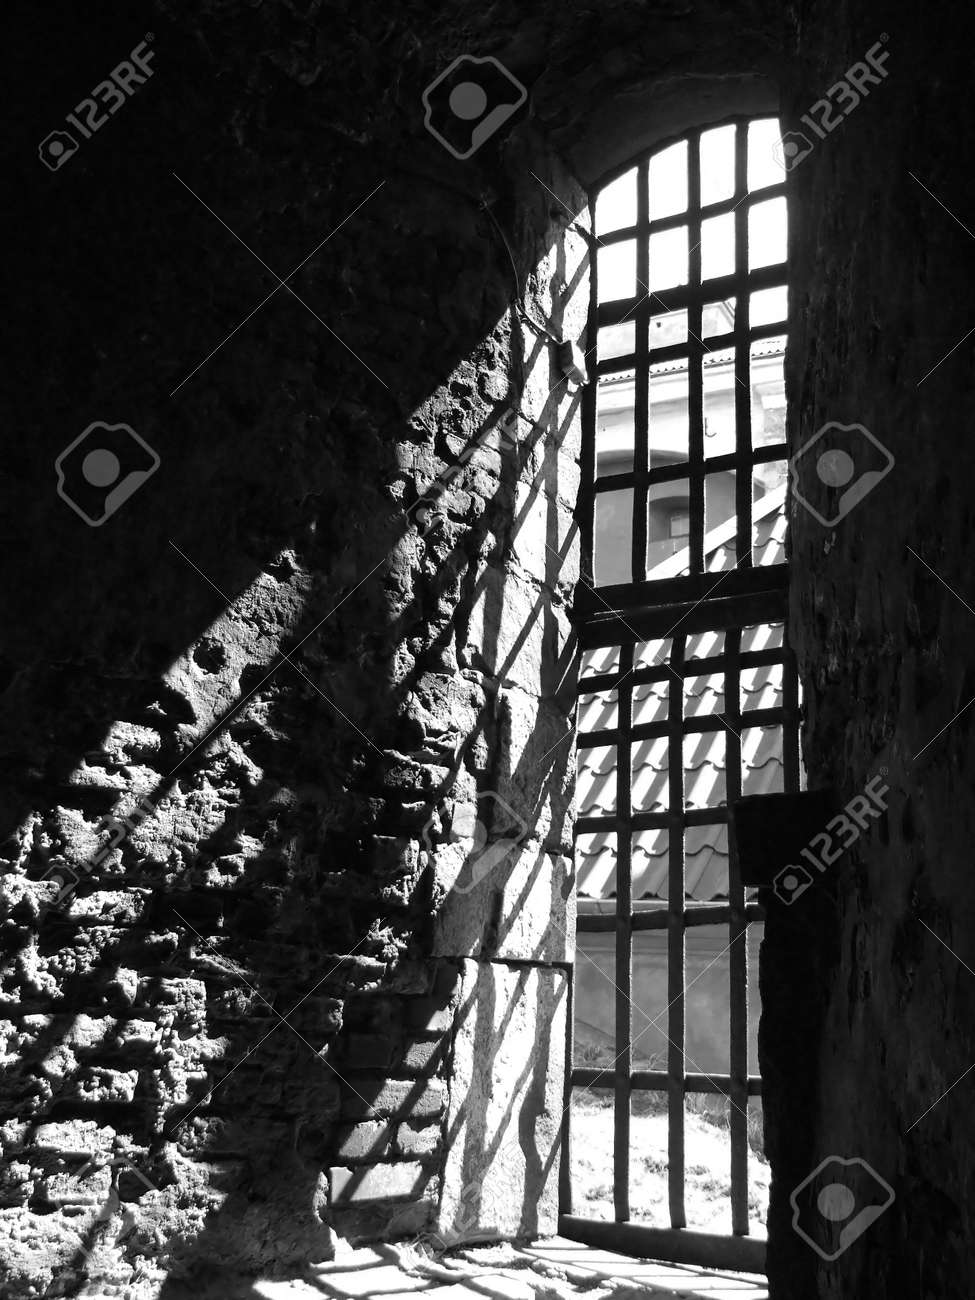 a view of a dungeon window from the dungeon interior of the Elfsborg fortress at Gothenburg in Sweden Stock Photo - 3507661